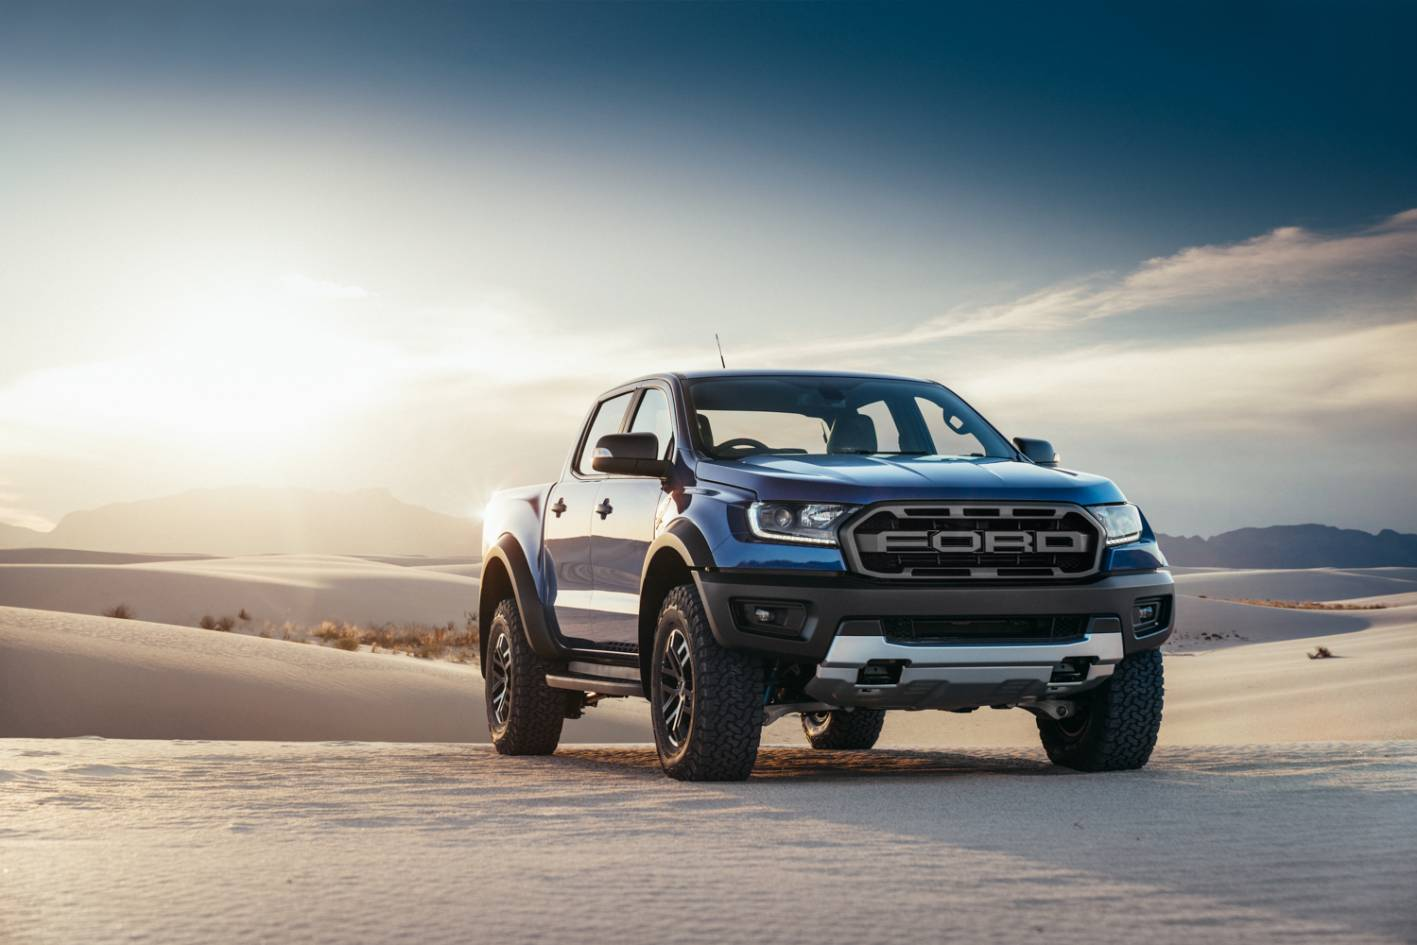 Ford Raptor Tuning >> Why you're all wrong about the new Ford Ranger Raptor | Practical Motoring